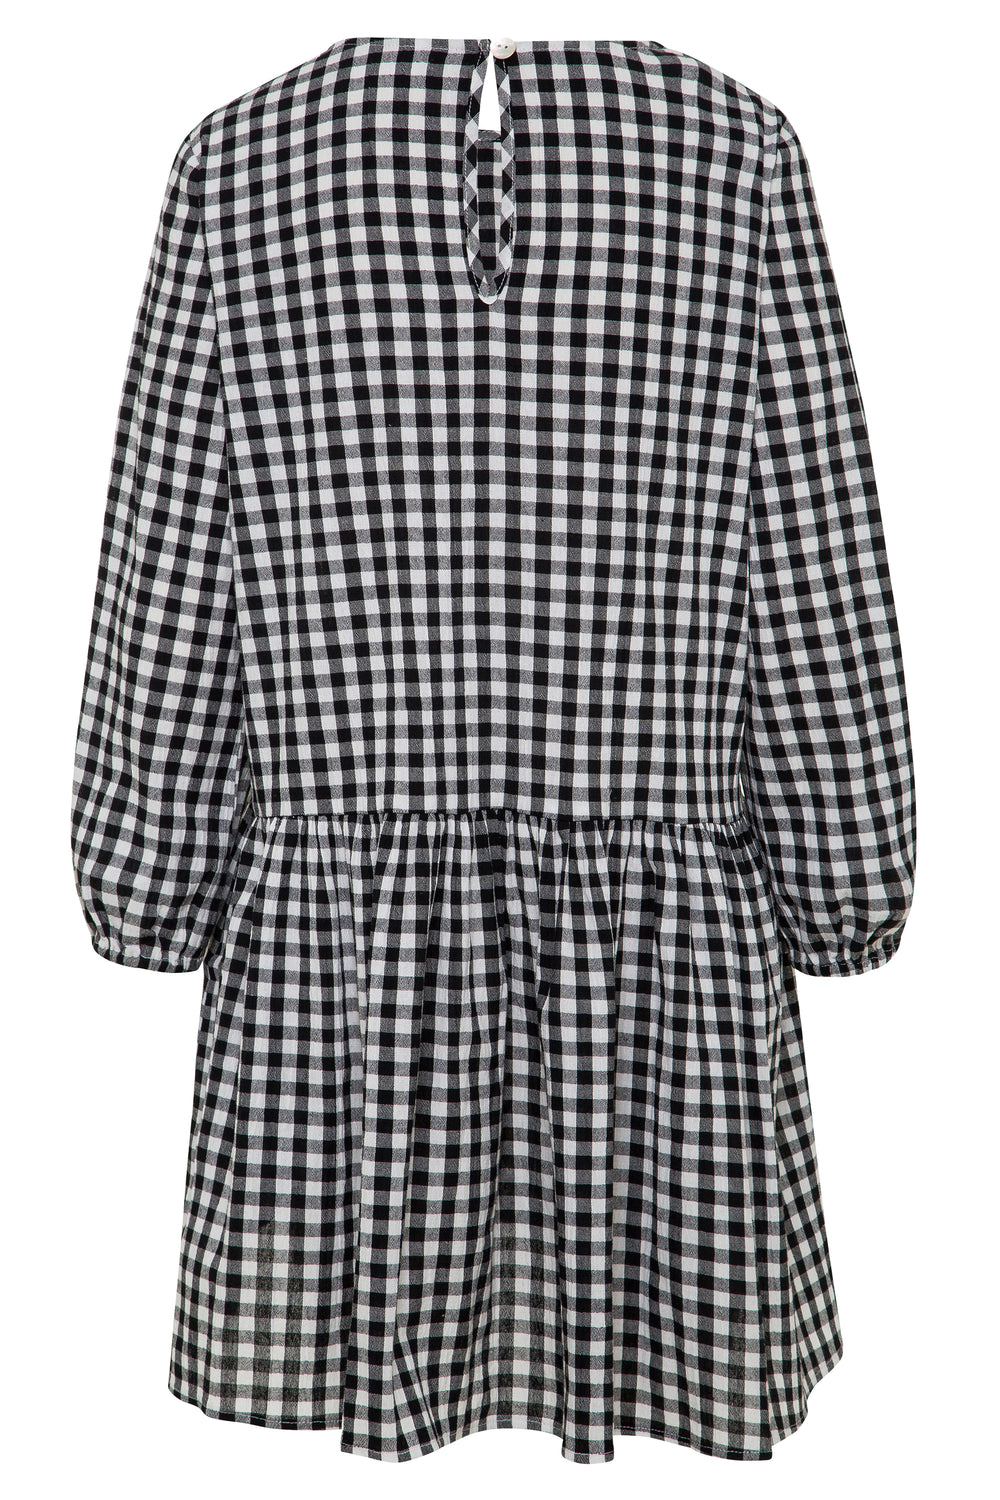 Elsa Dress In Black Gingham